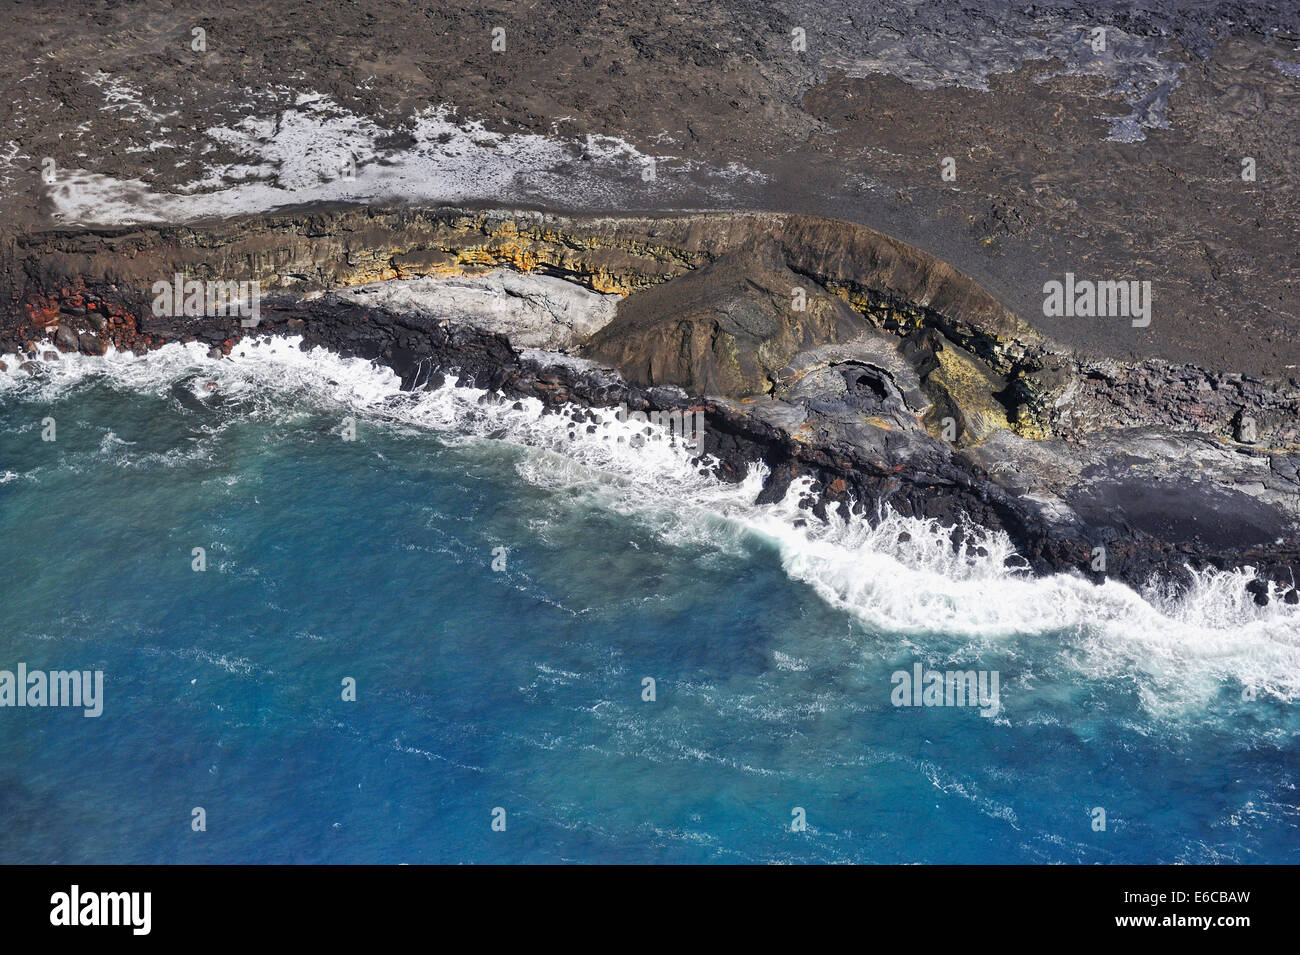 Cooled lava fields by the ocean (aerial view), Kilauea Volcano, Big Island, Hawaii Islands, USA - Stock Image